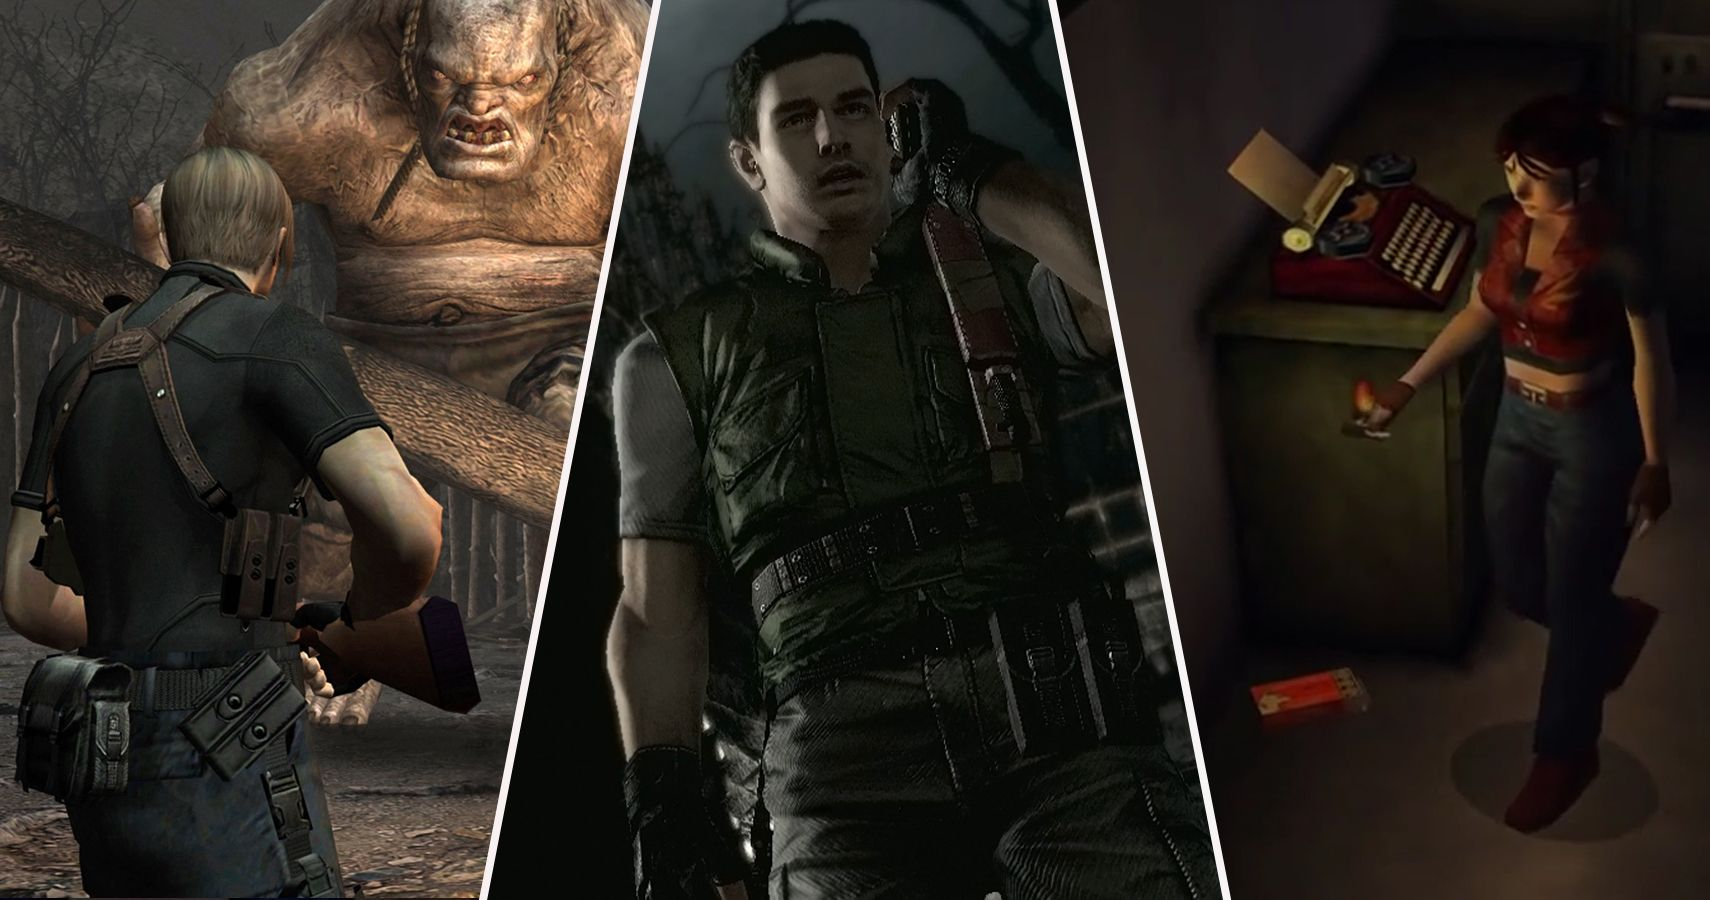 Every Main Resident Evil Game Ranked From Worst To Best